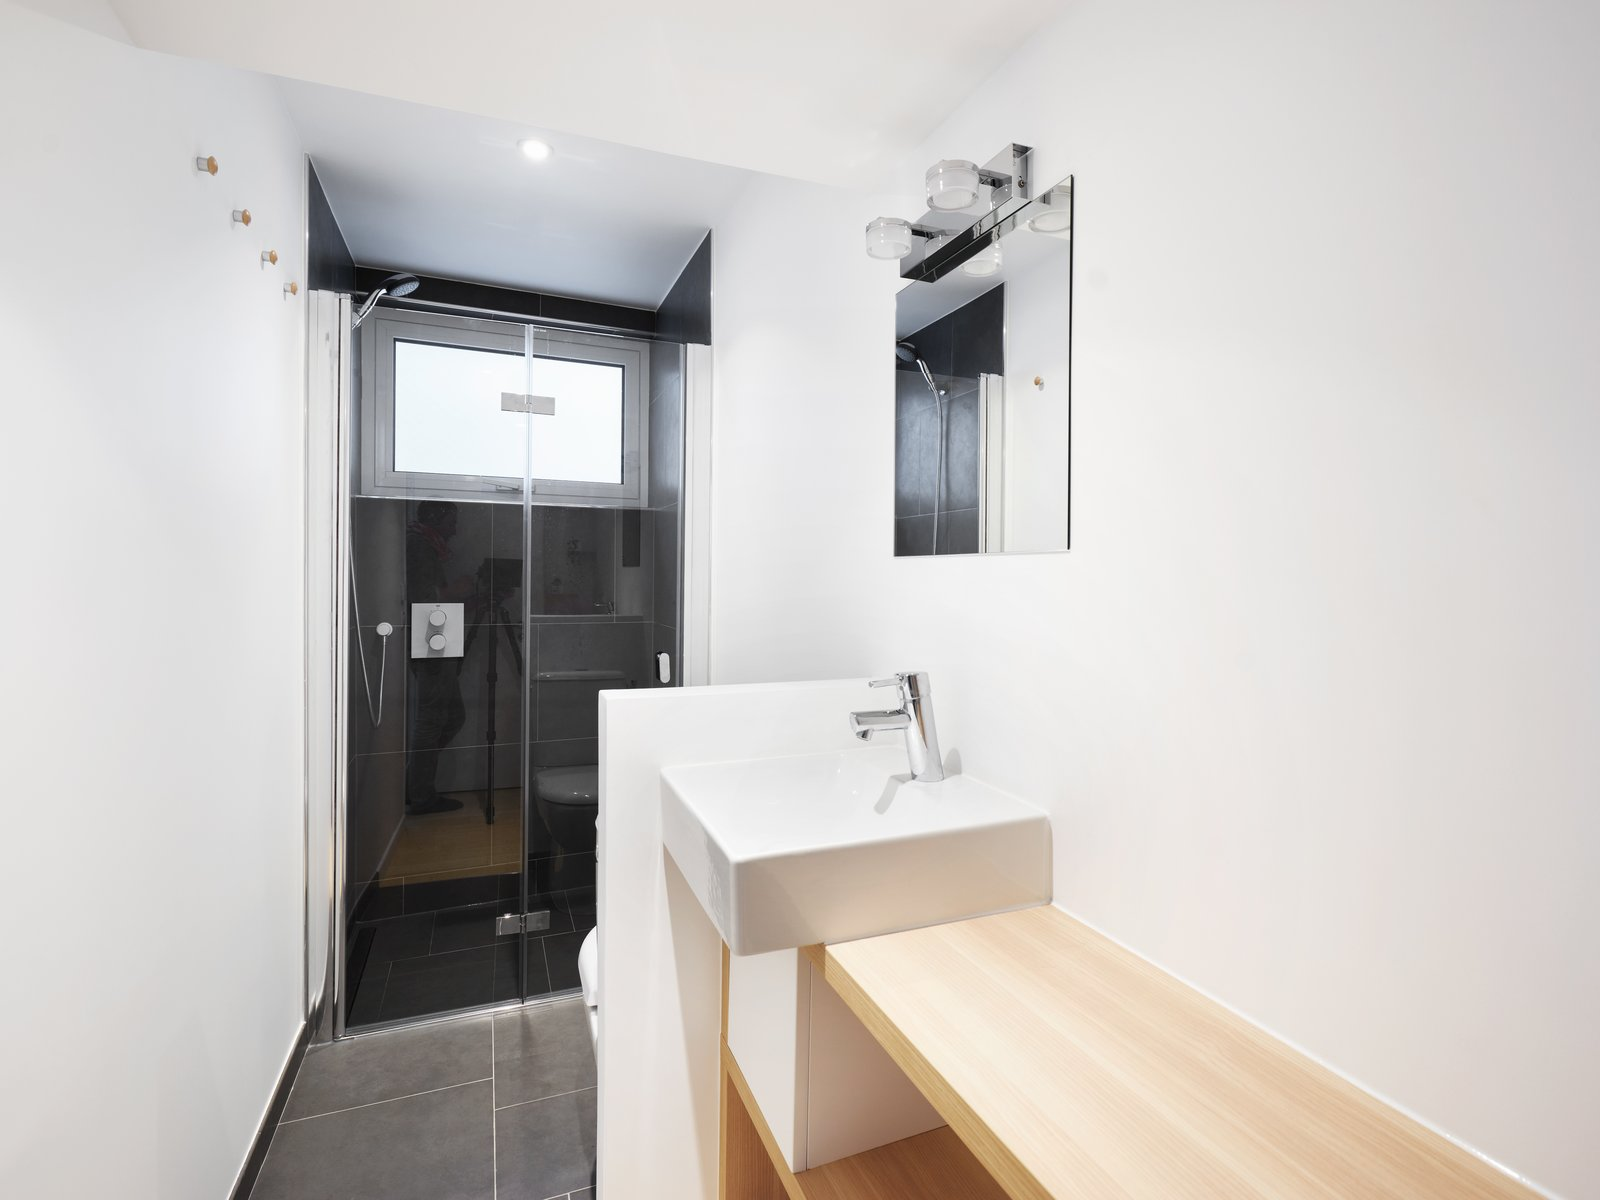 Bath, Wall, Recessed, Wall Mount, Enclosed, and Wood The bathroom has an elevated shower area with frosted glass windows that look out to a quiet alley.   Best Bath Enclosed Wall Wall Mount Photos from Before & After: A Renovated Artist's Studio Is Now an Airy, Efficient Home